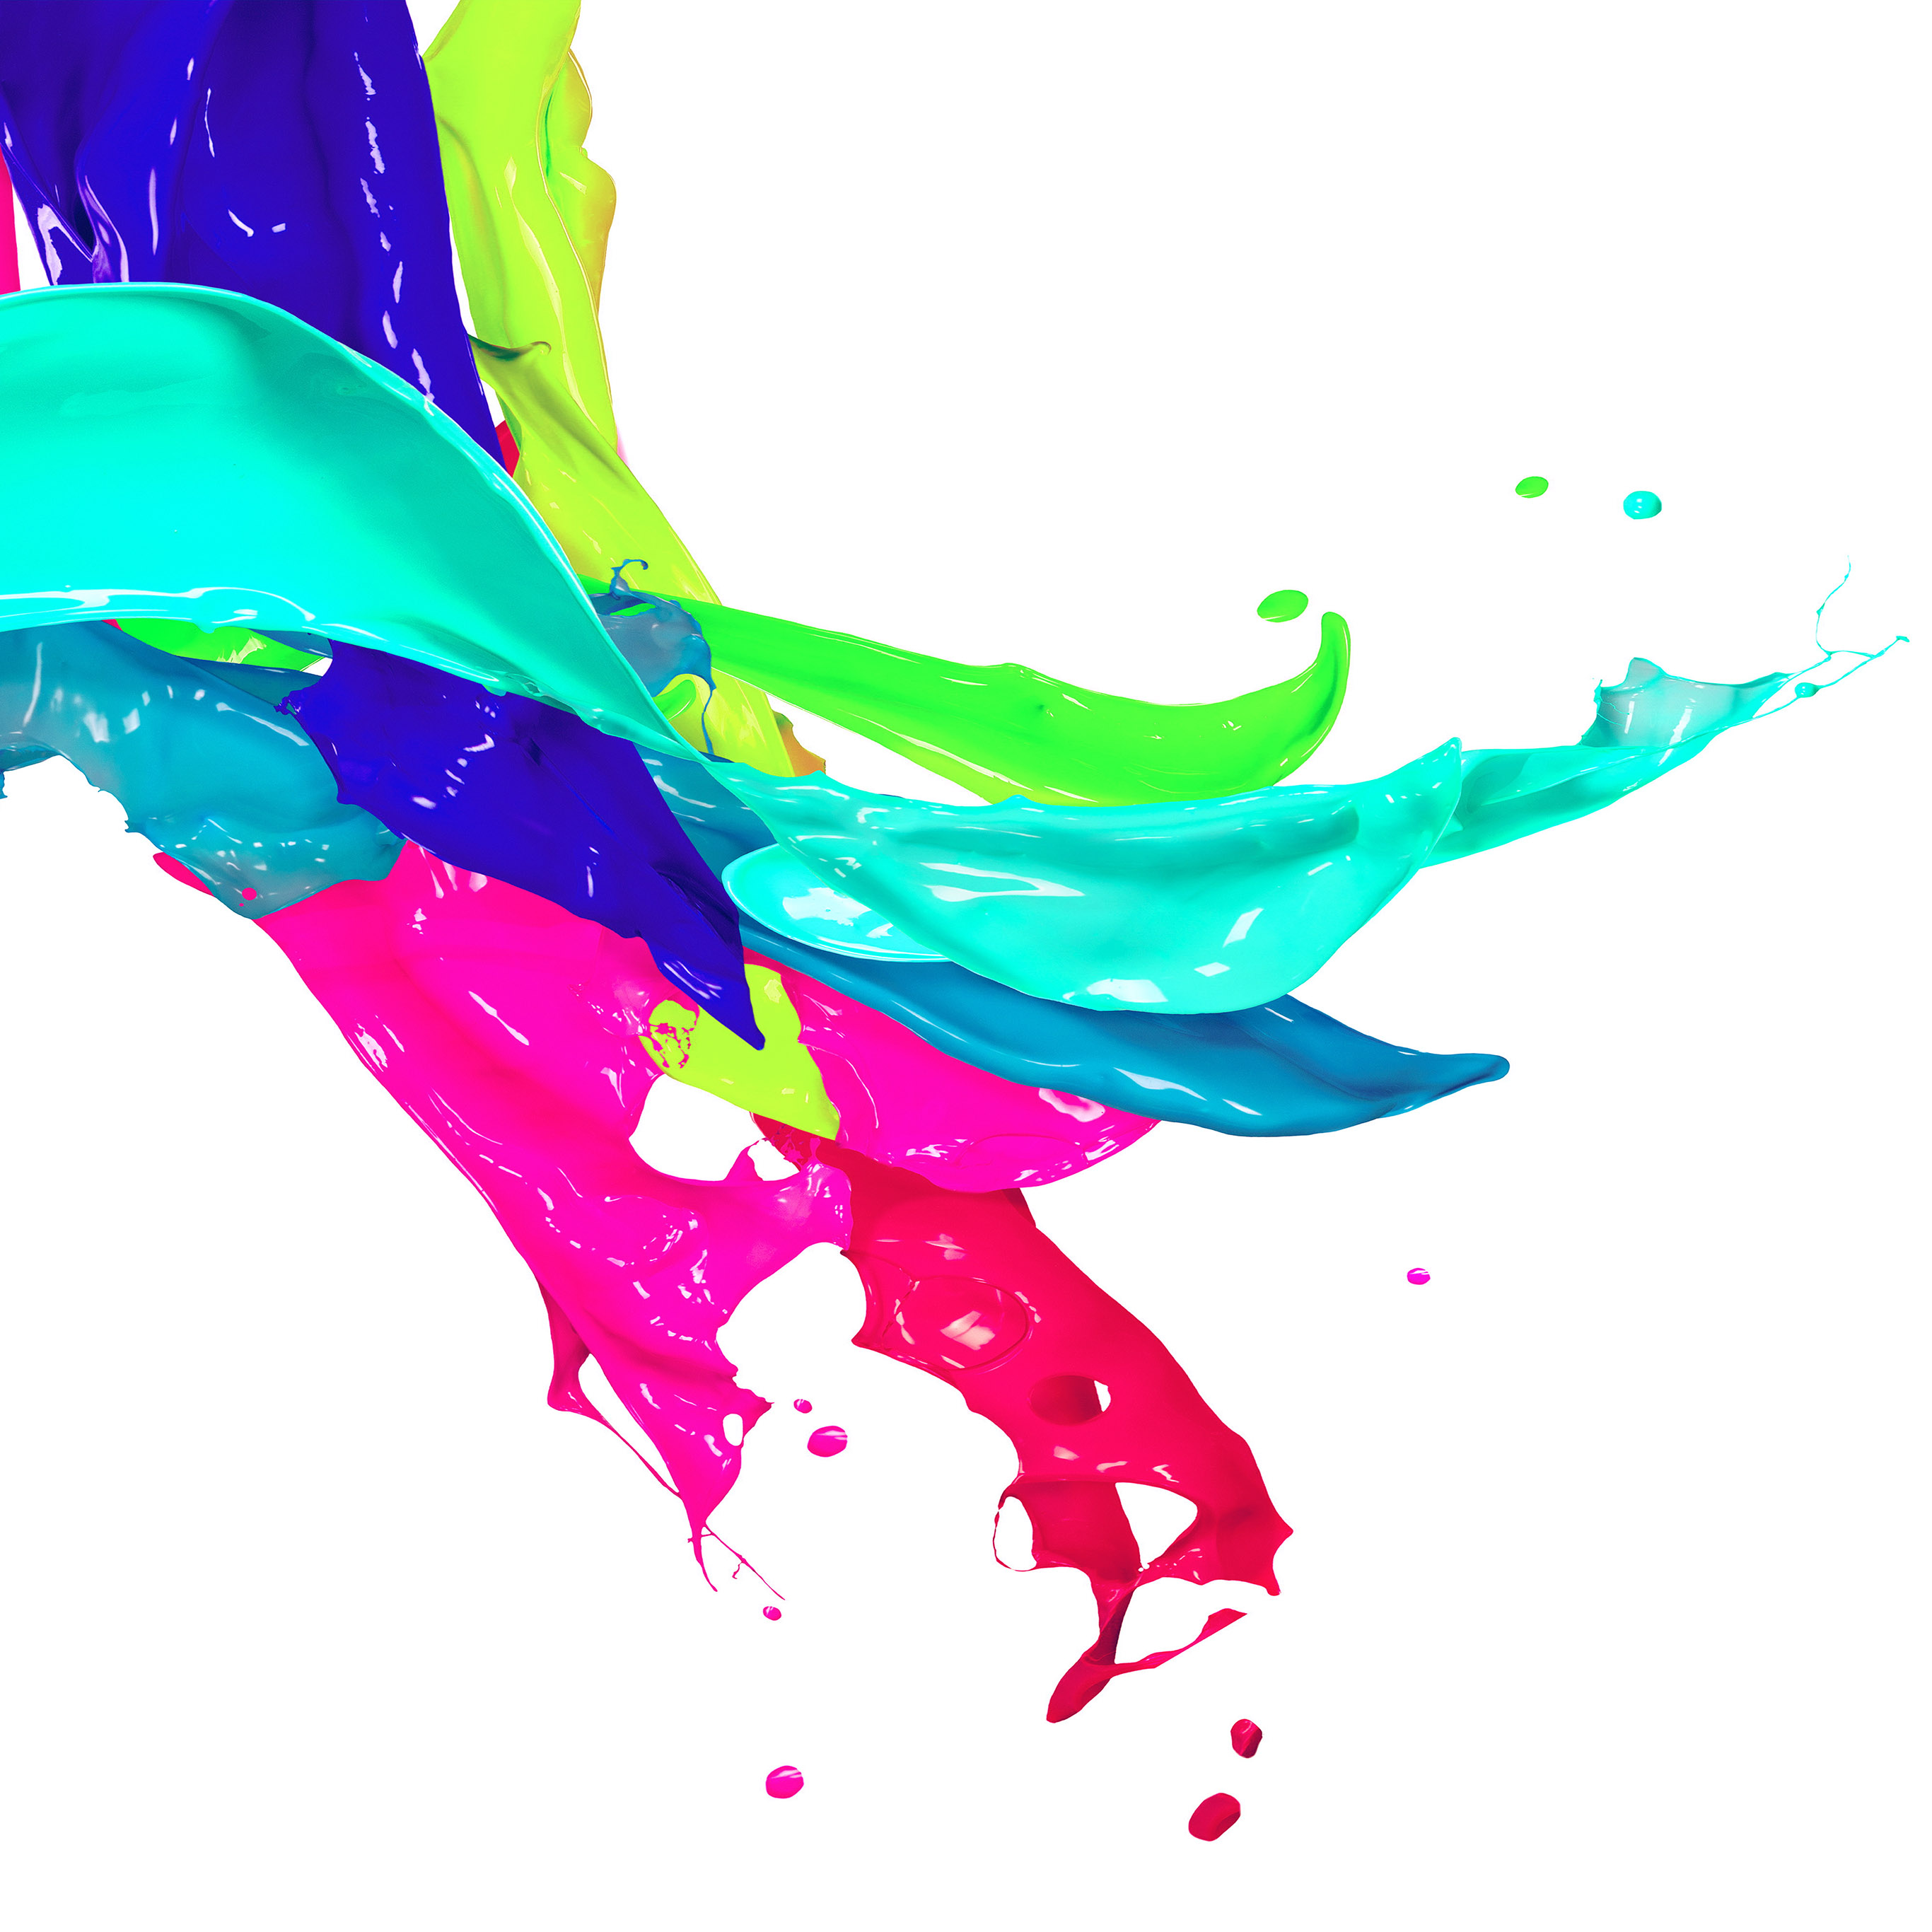 rainbow illustration wallpaper 1920x1080 - photo #13